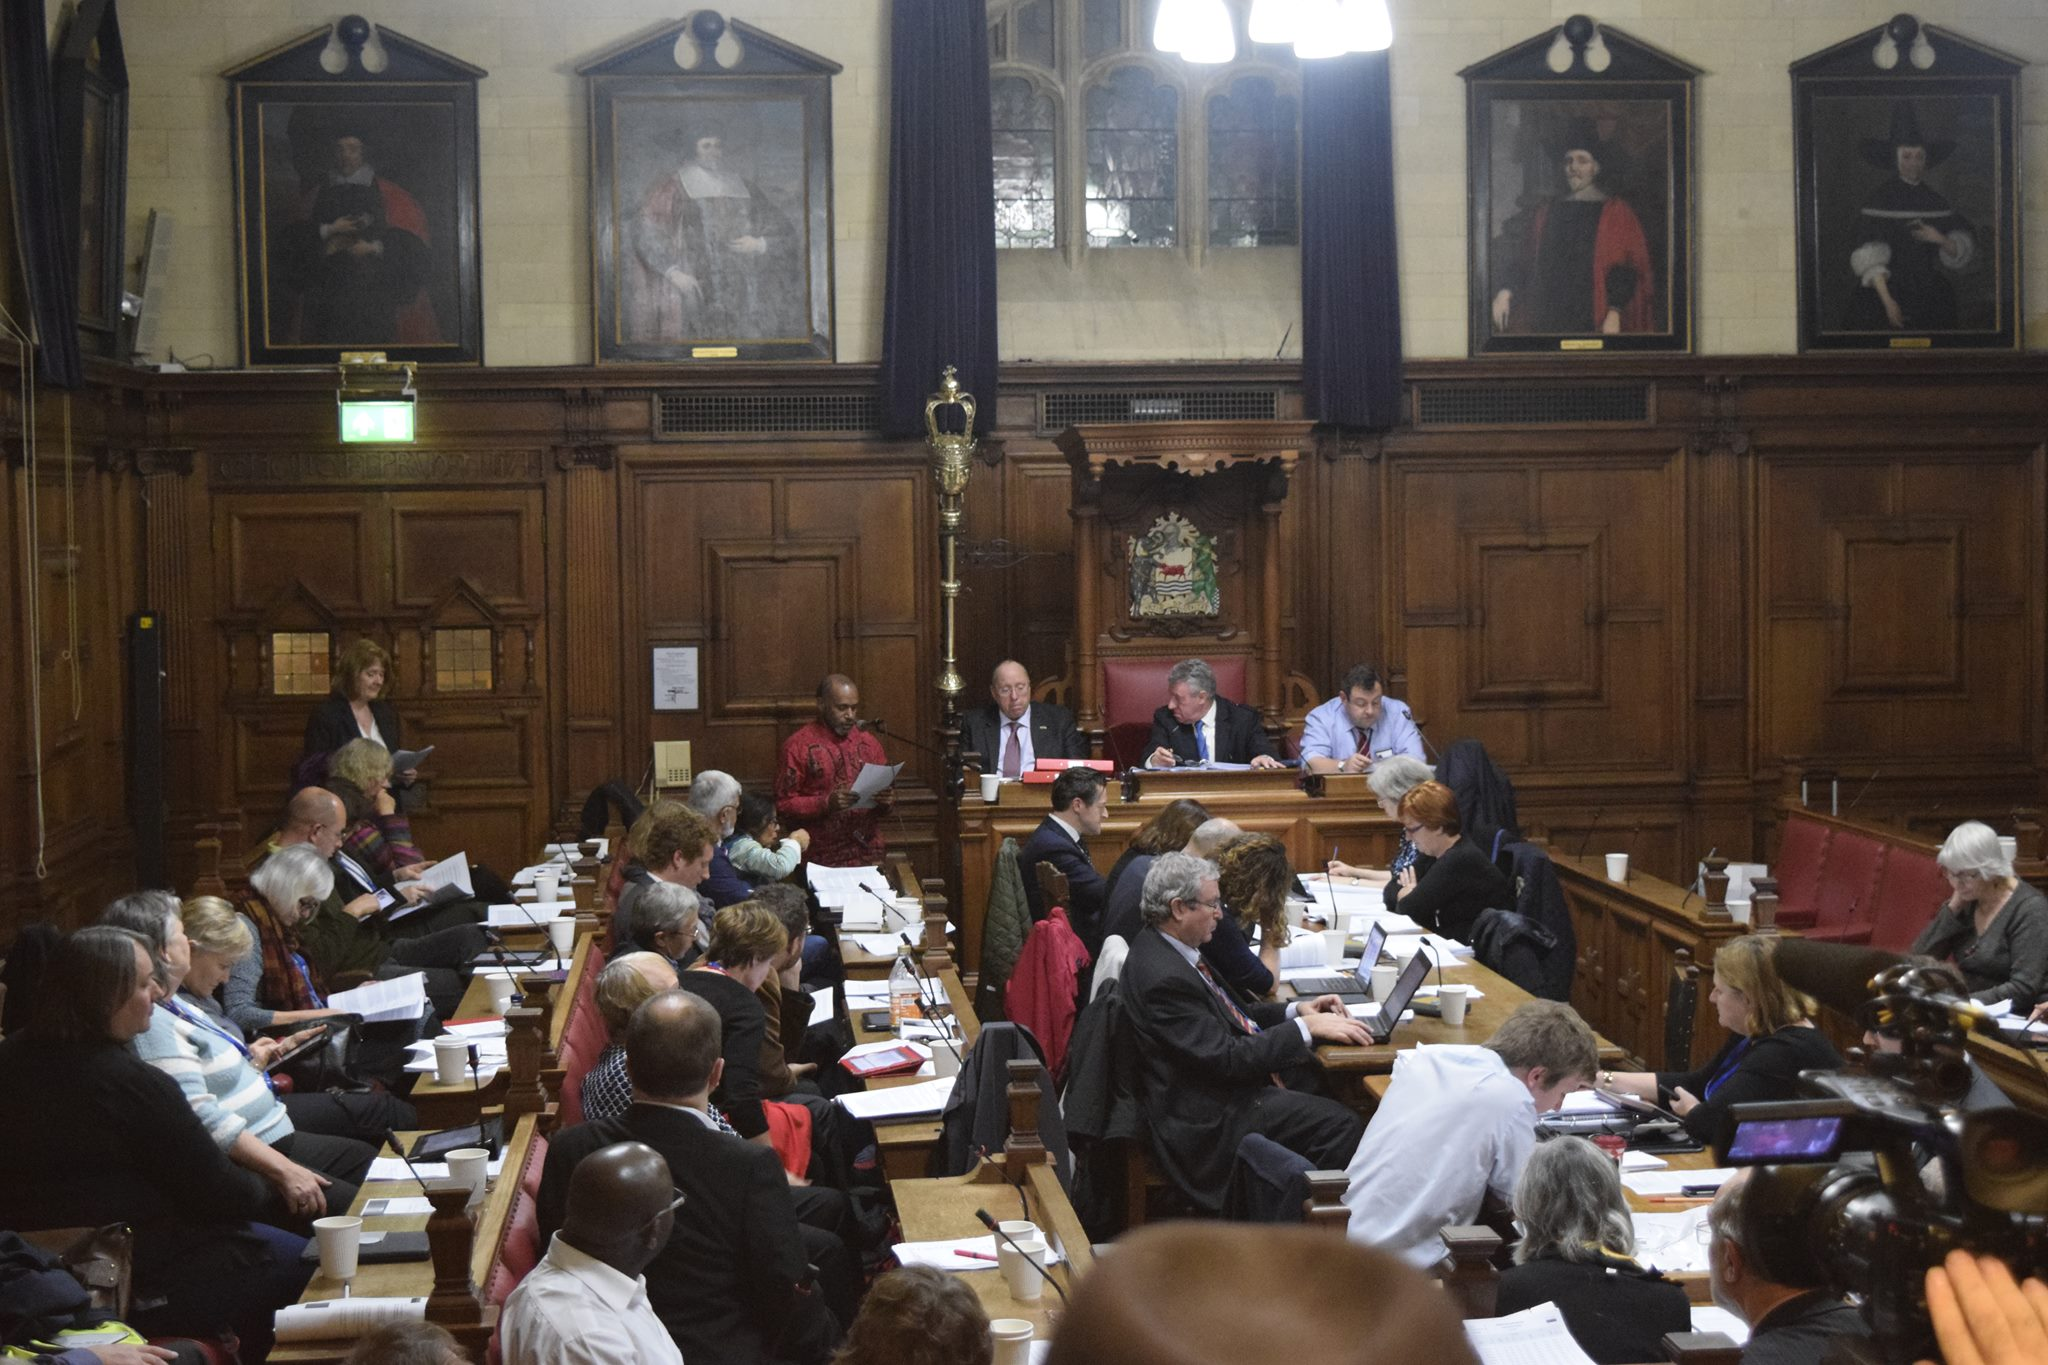 Benny Wenda addresses and thanks the Oxford City Council for Free West Papua support